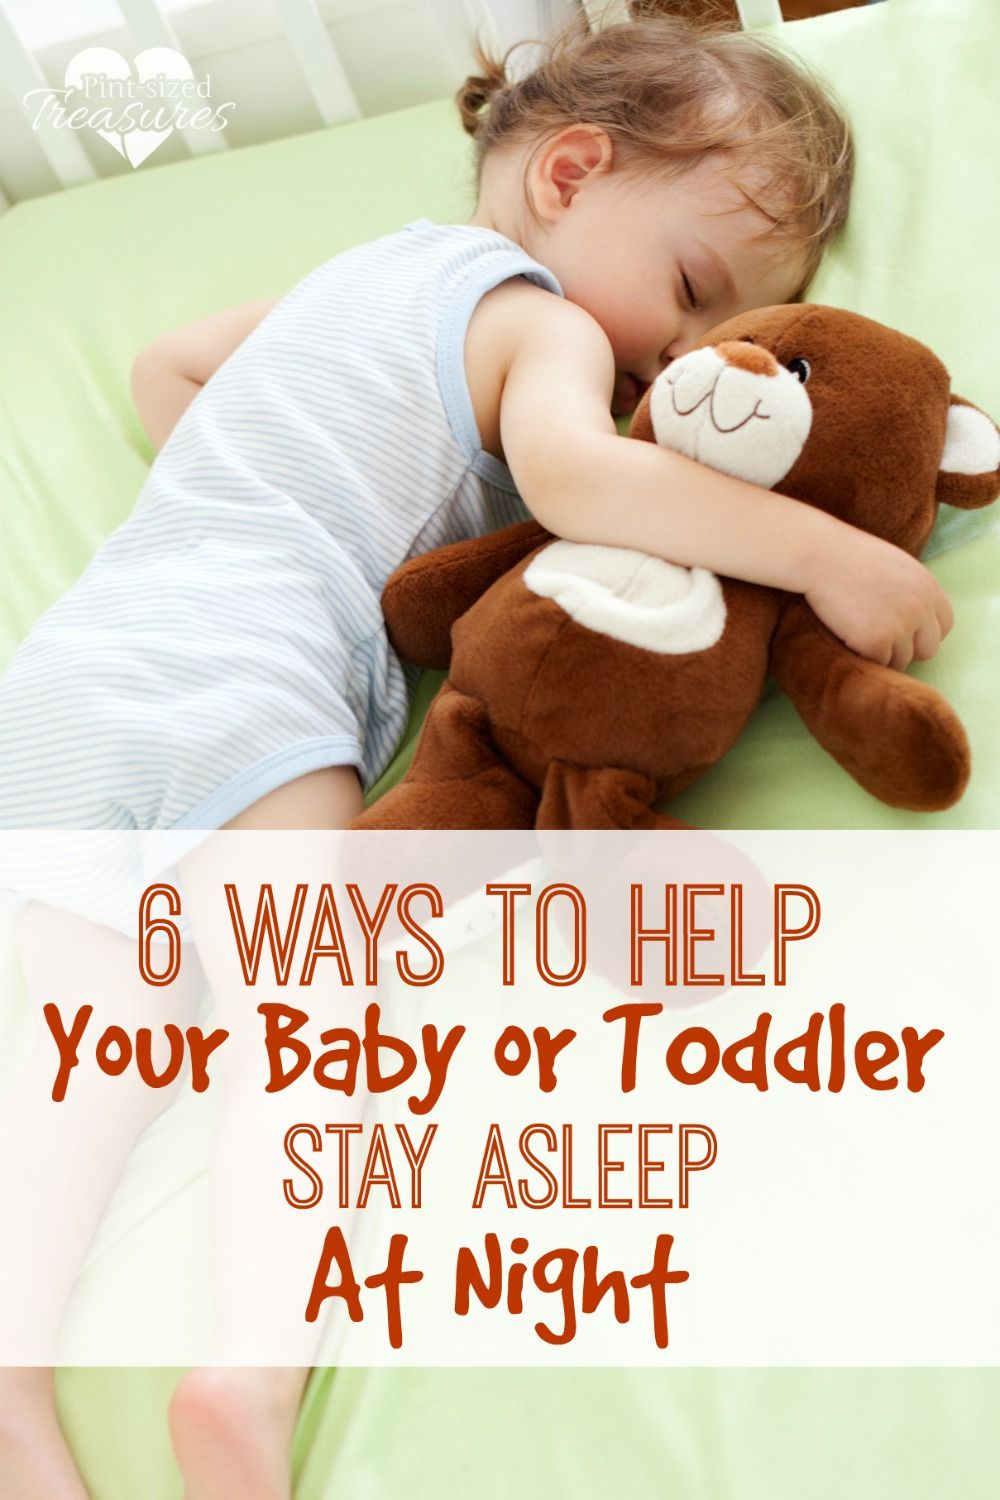 Does Your Baby Or Toddler Have Trouble Staying Asleep At Night Here Are Six Mom Proven Ways To Help Your Little One Get A Full Nights Rest